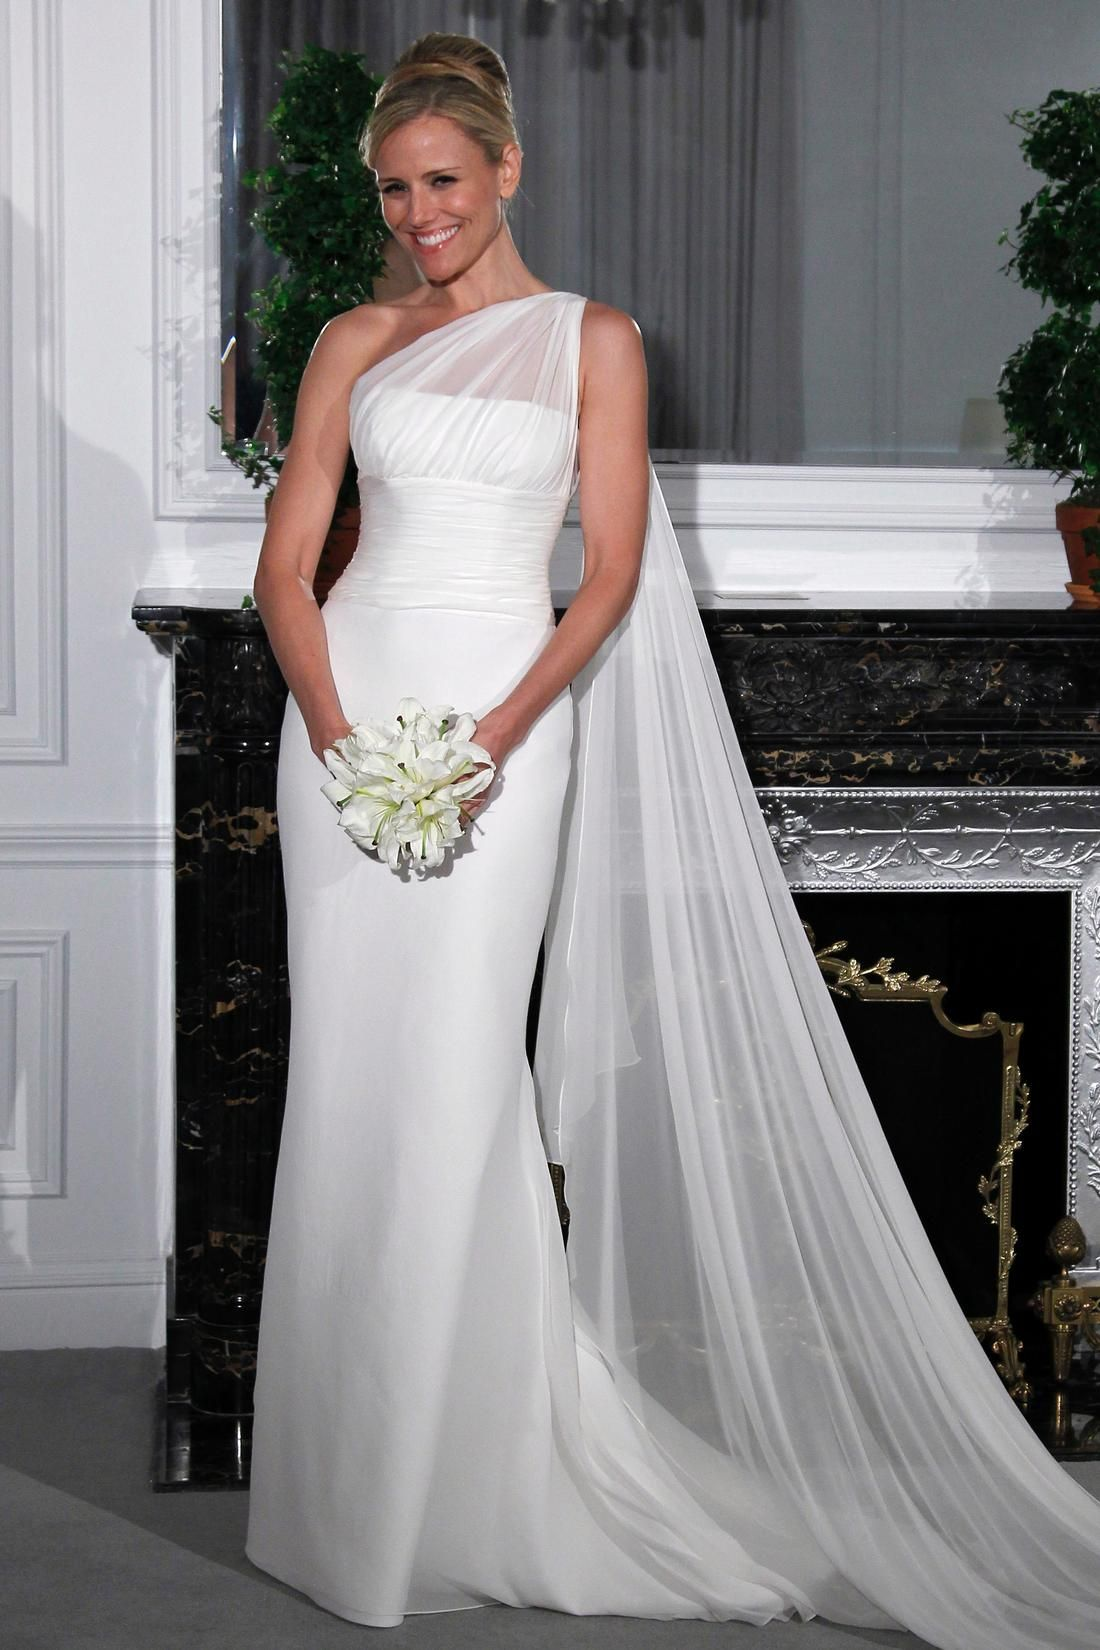 Bridal Gowns: Legends By Romona Keveza Sheath Wedding